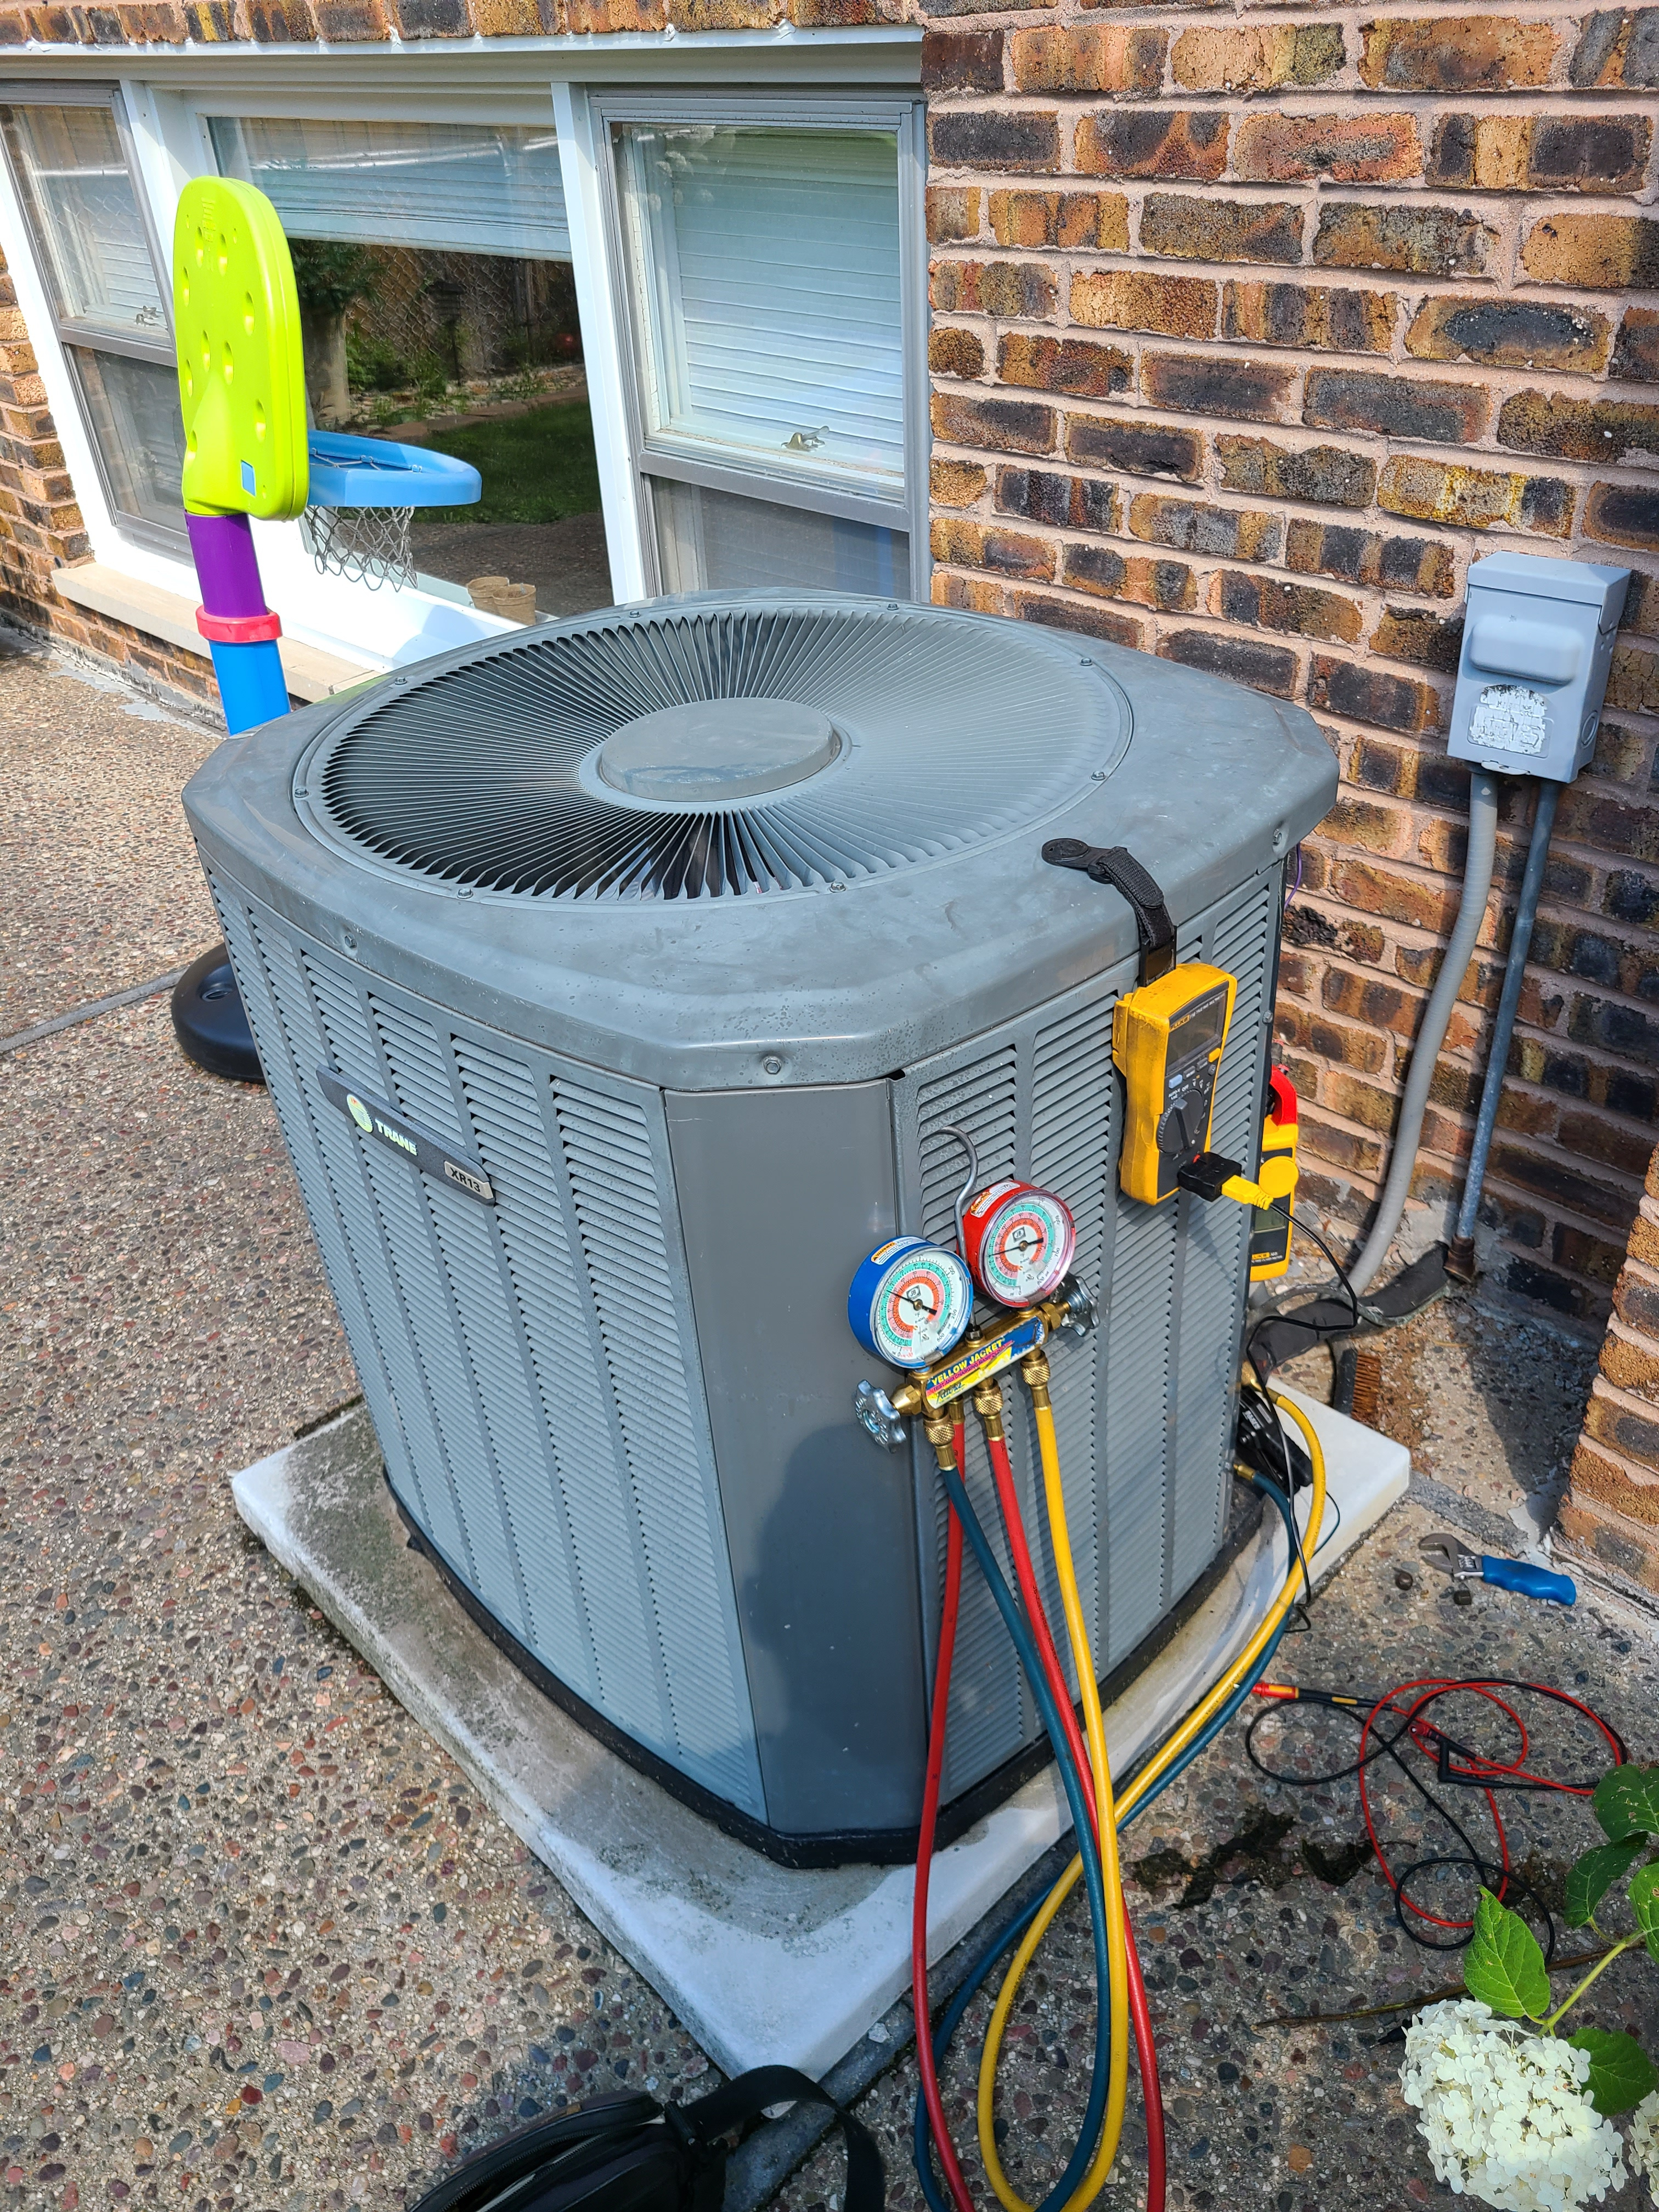 Trane air conditioning system no cooling operation diagnosed and repaired, replaced condenser fan motor.